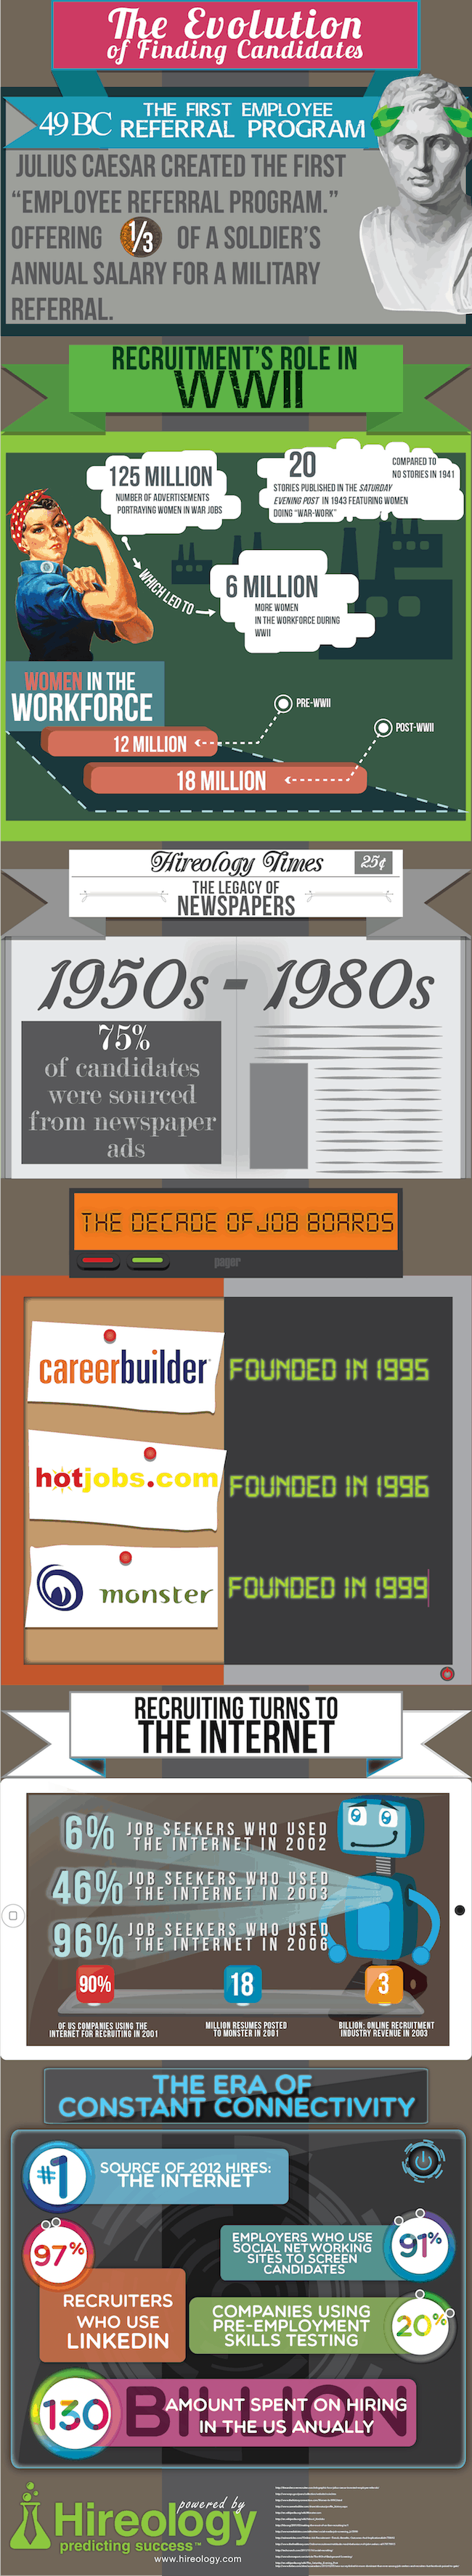 Evolution_Finding_Candidate_infographic